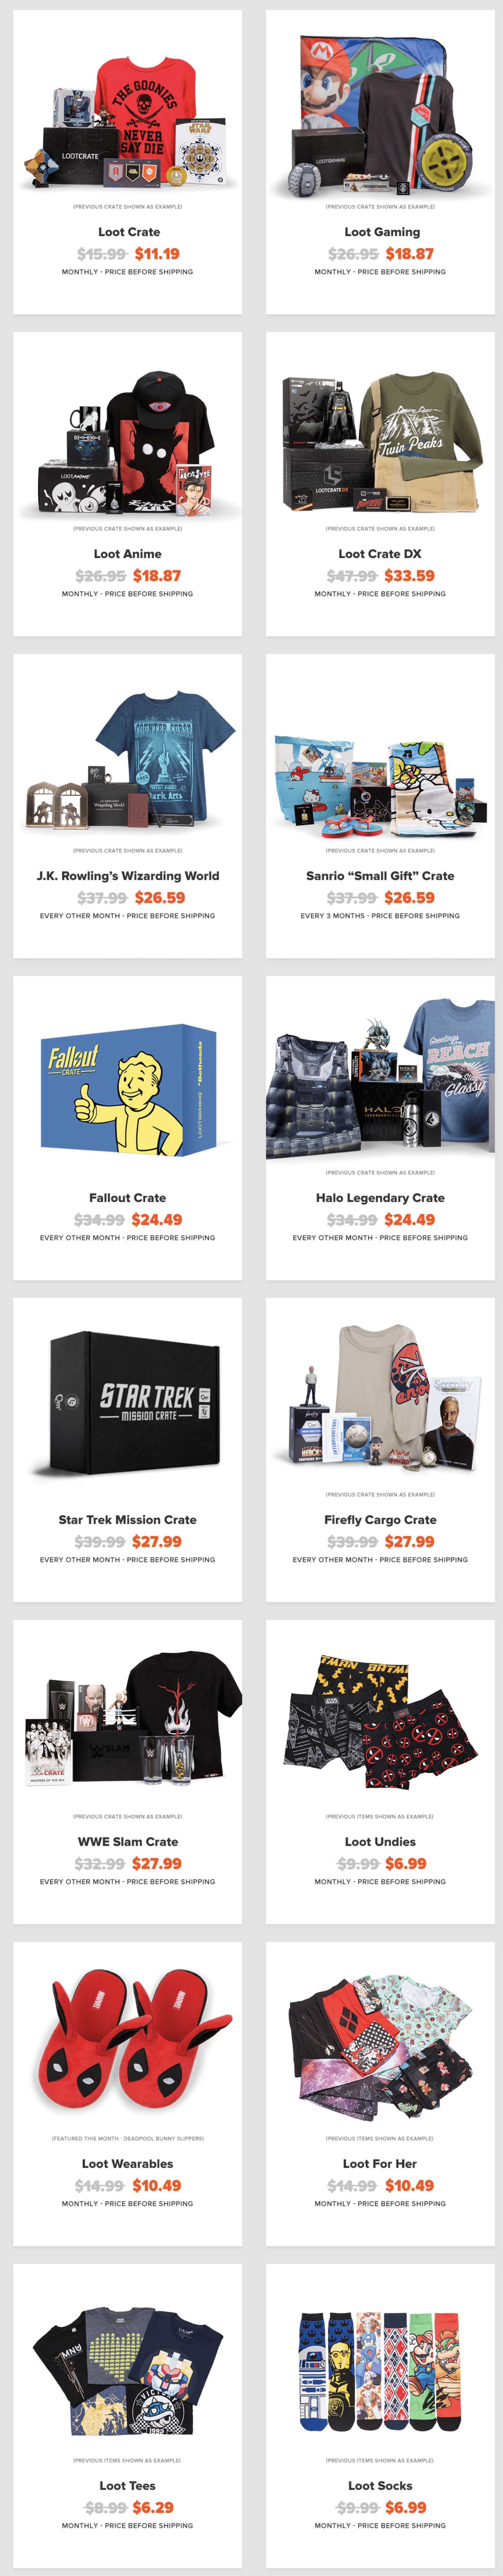 Loot Crate Black Friday Sale 30 Off All Crates